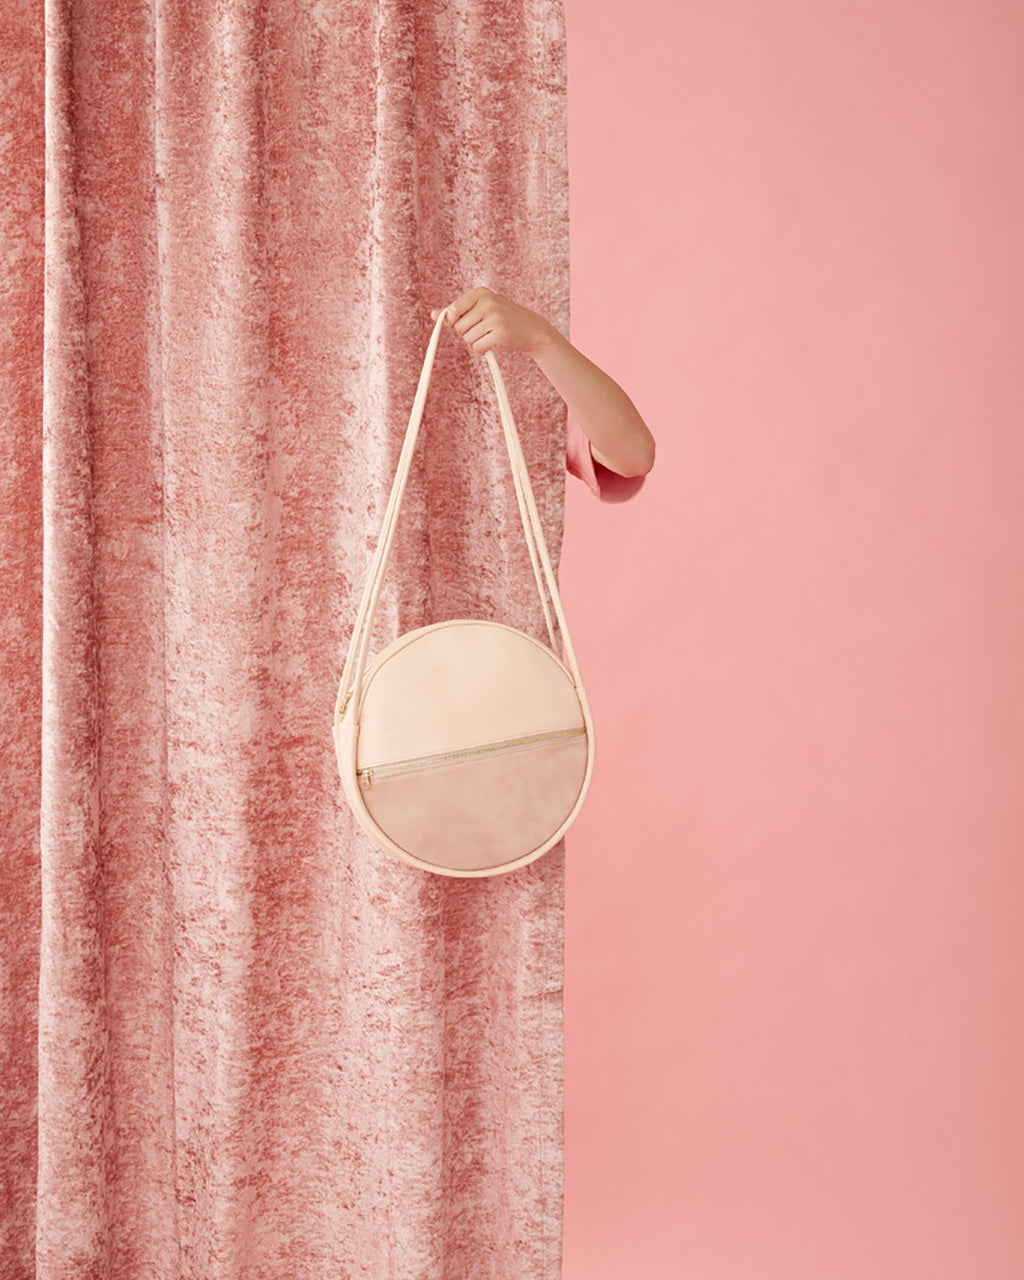 The Amigo Circle Bag is always down to hang.